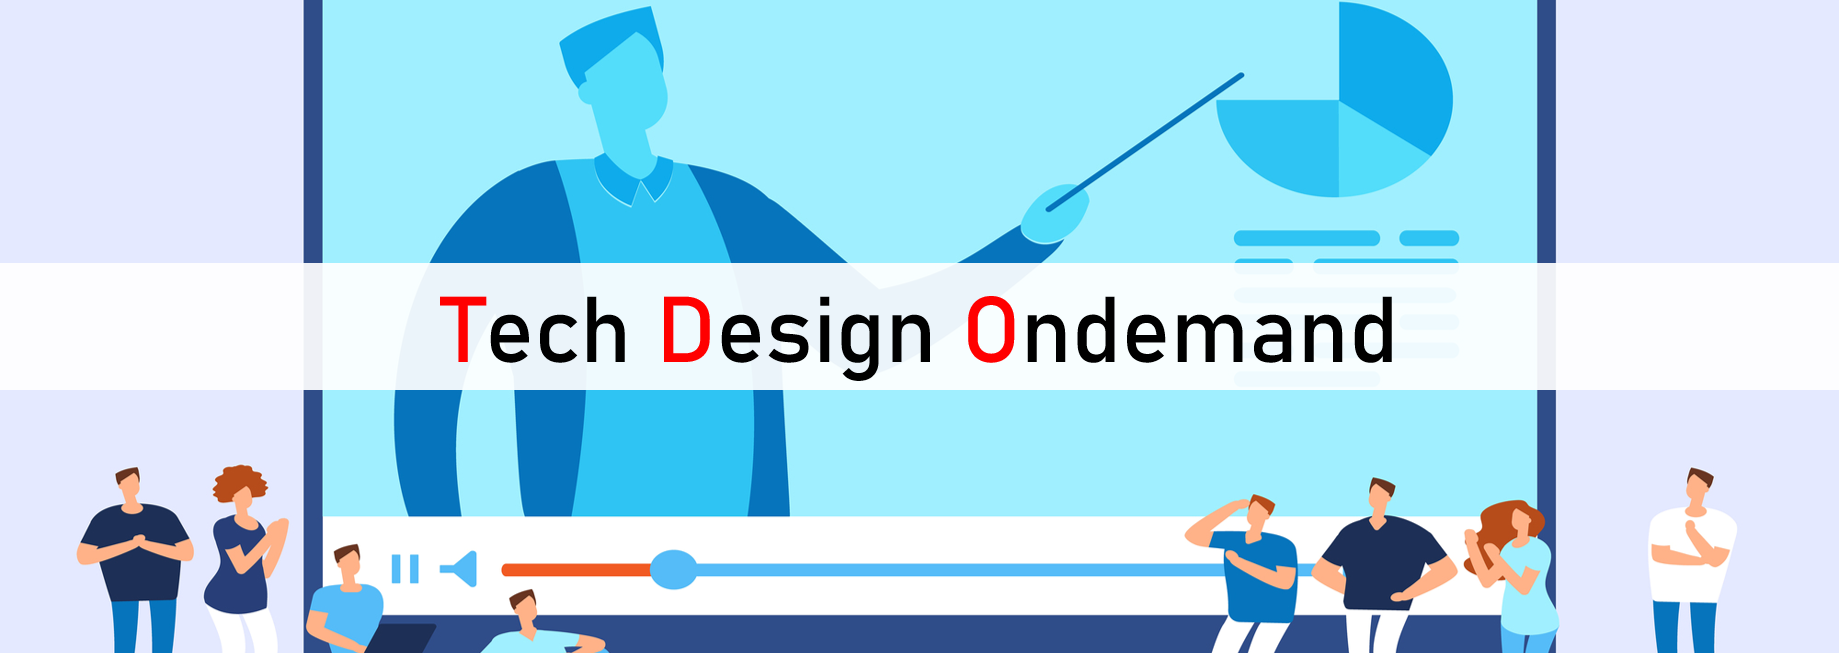 tech design ondemand